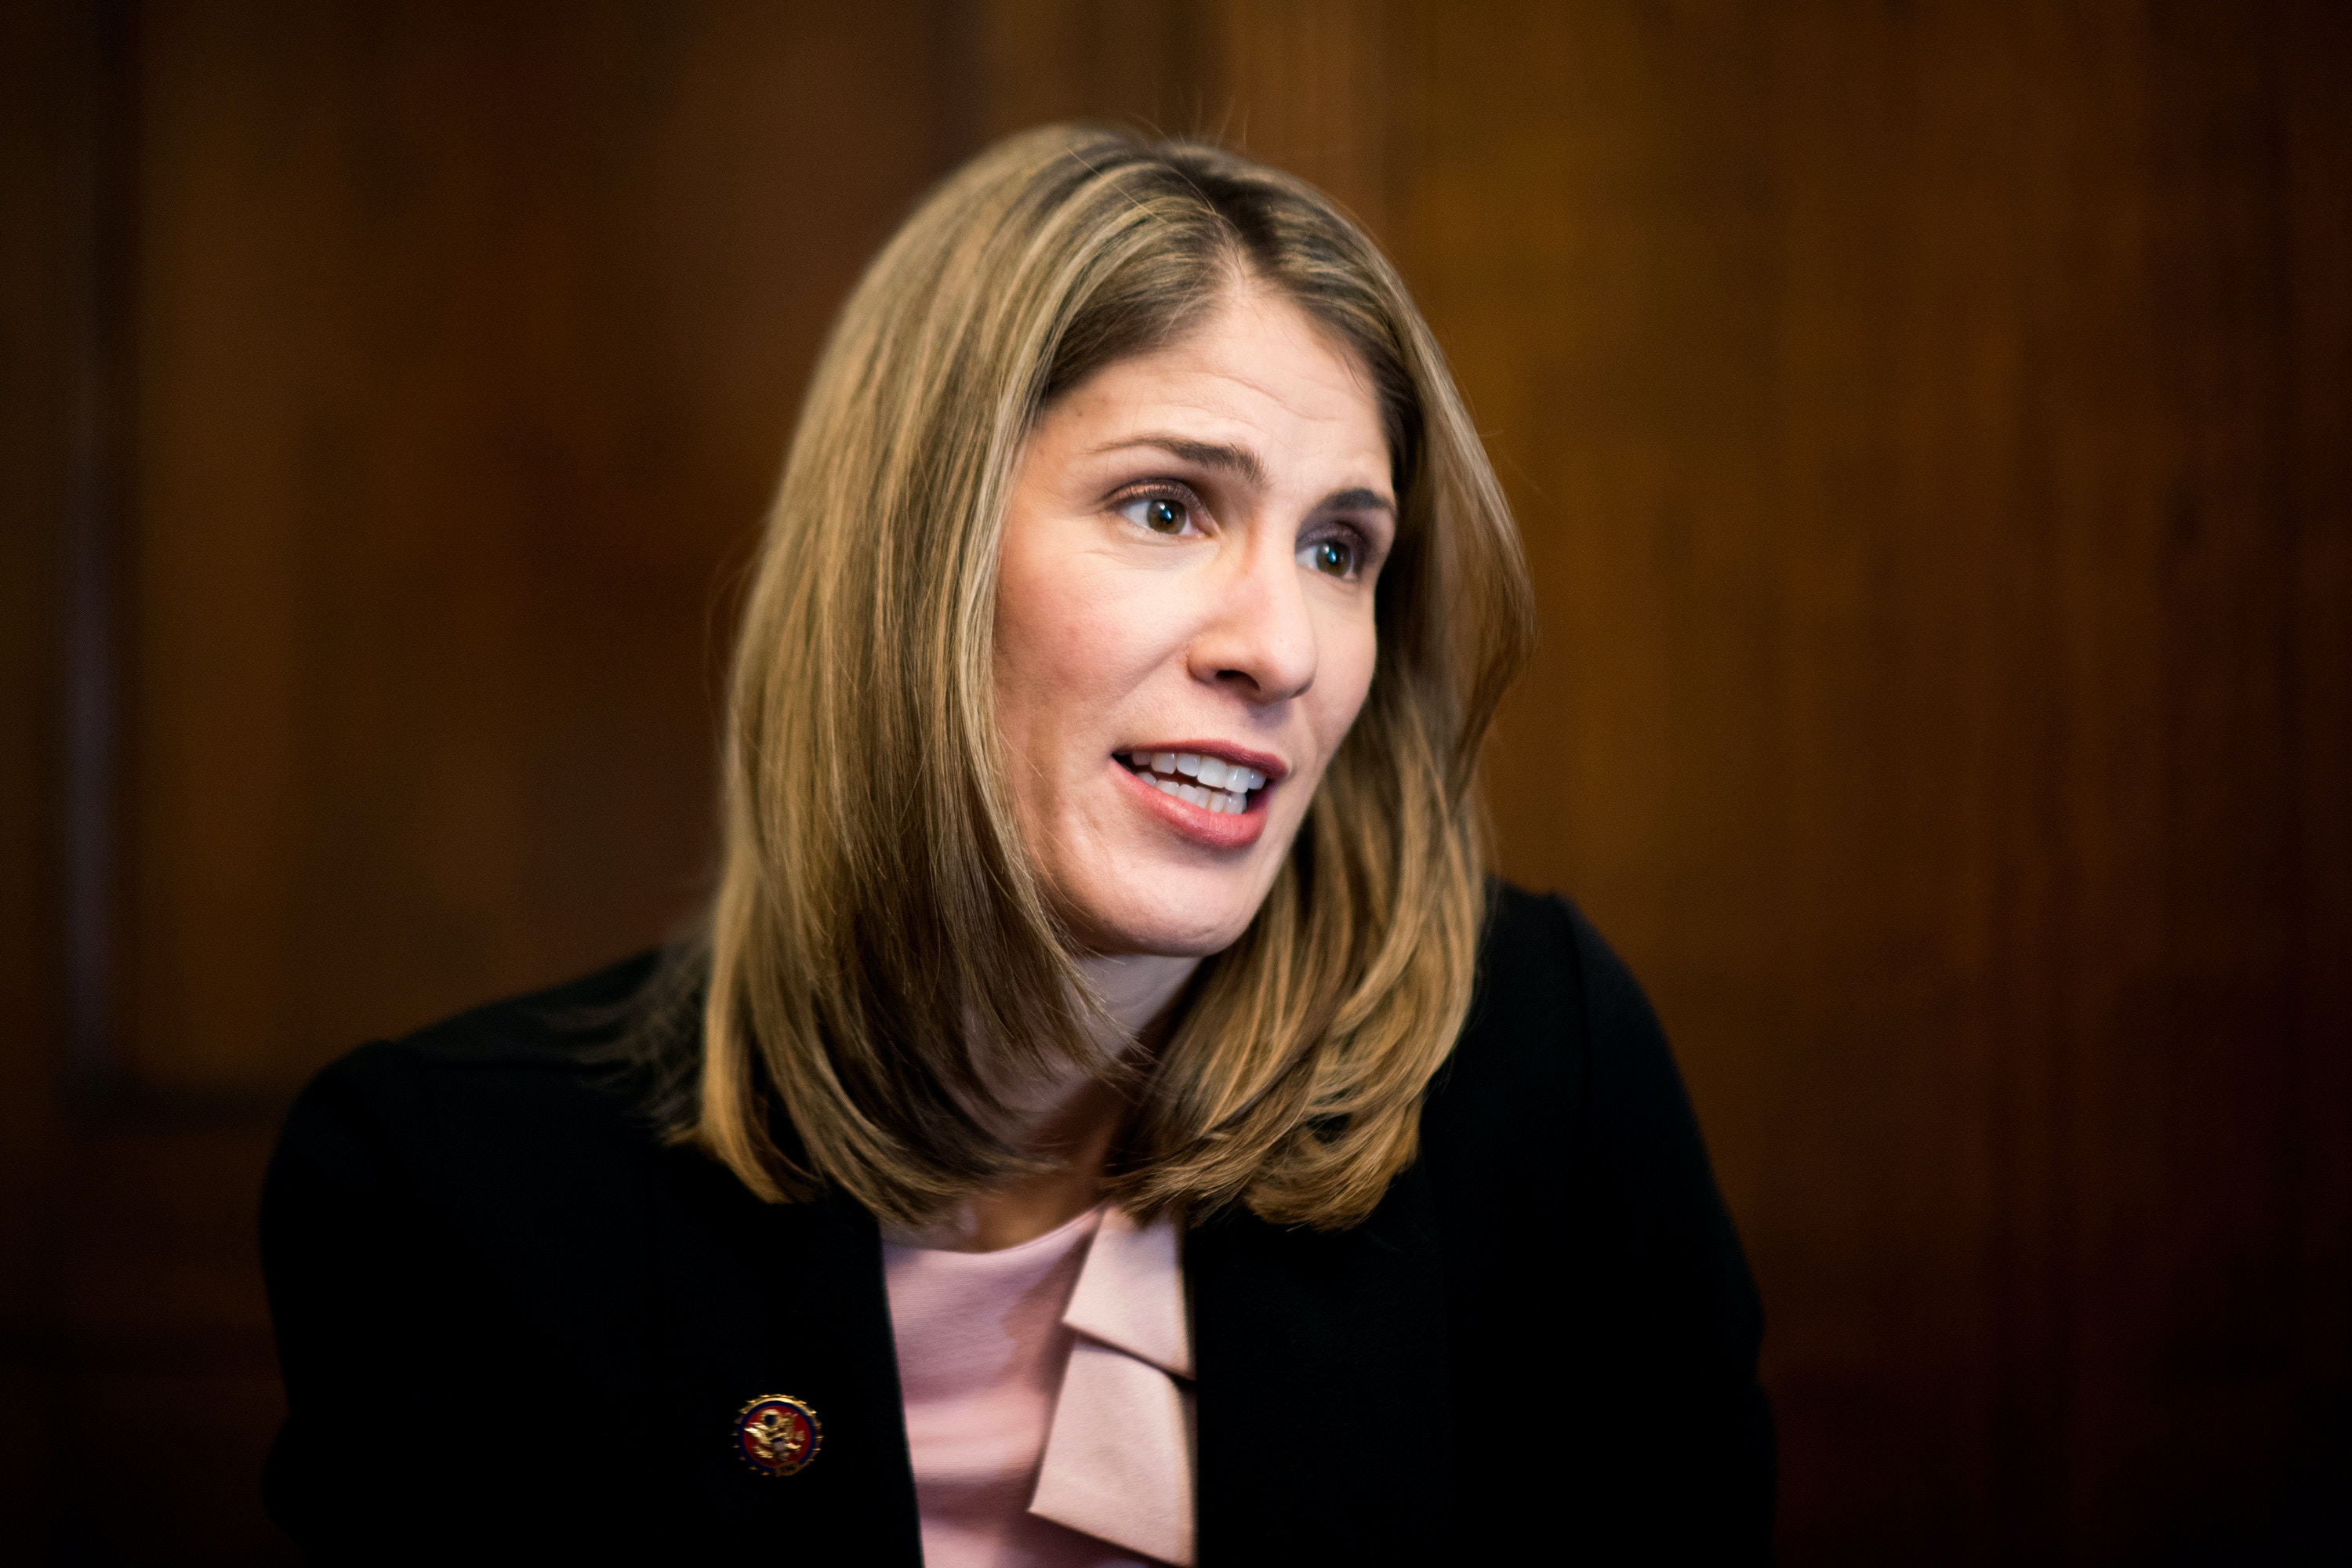 UNITED STATES - FEBRUARY 14: Rep. Lori Trahan, D-Mass., speaks with Roll Call in her office on Feb. 14, 2019. (Photo By Bill Clark/CQ Roll Call via AP Images)